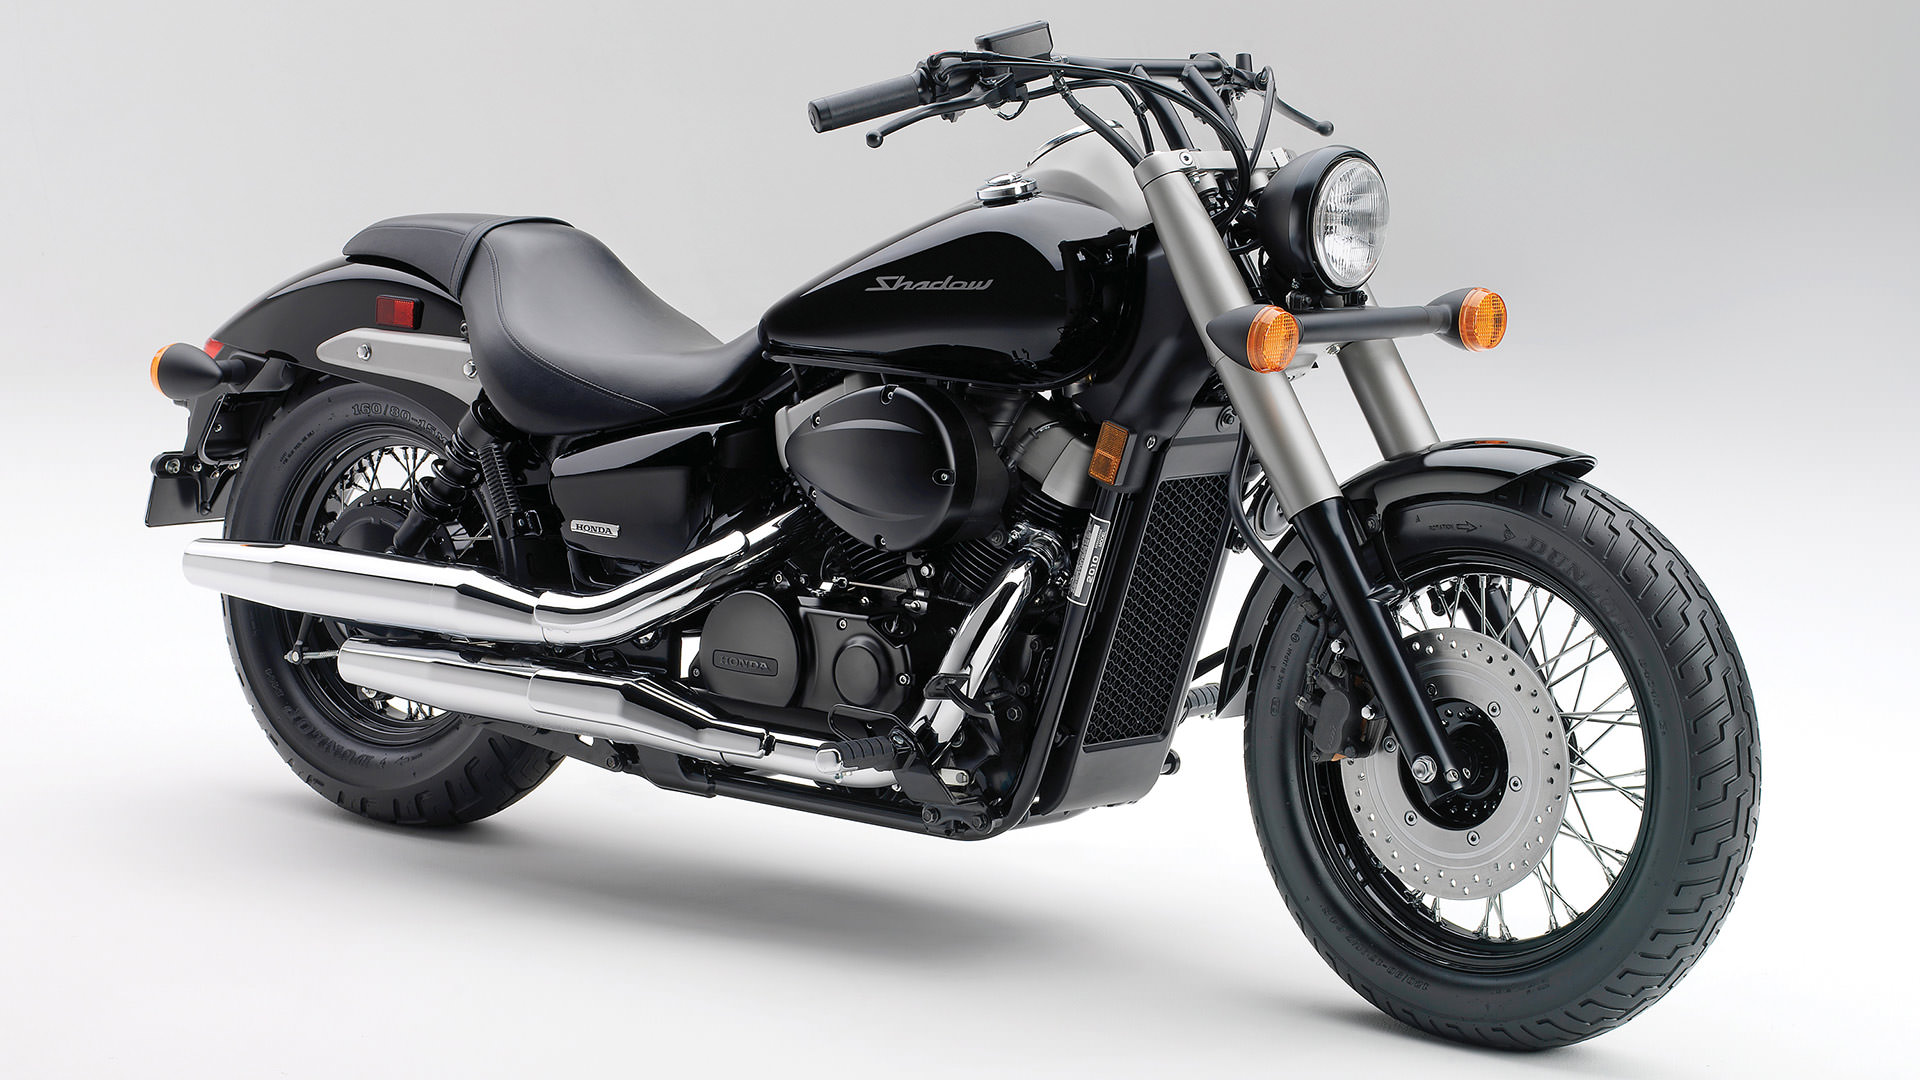 2016 honda shadow phantom 750 review    specs    pictures